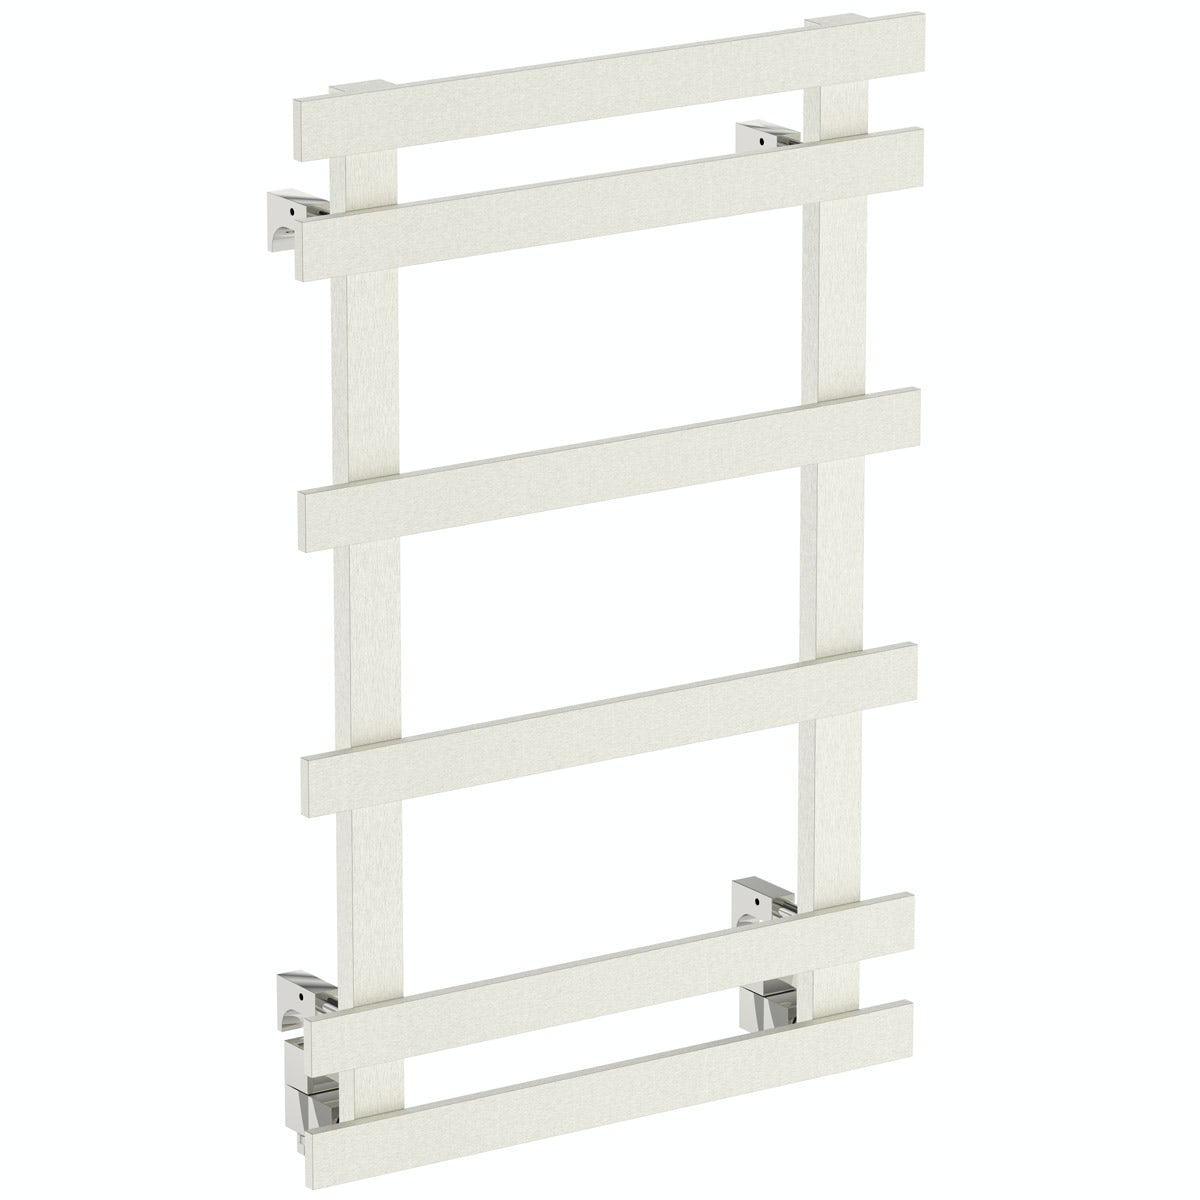 Mode Daisy 6 bar heated towel rail 749 x 500